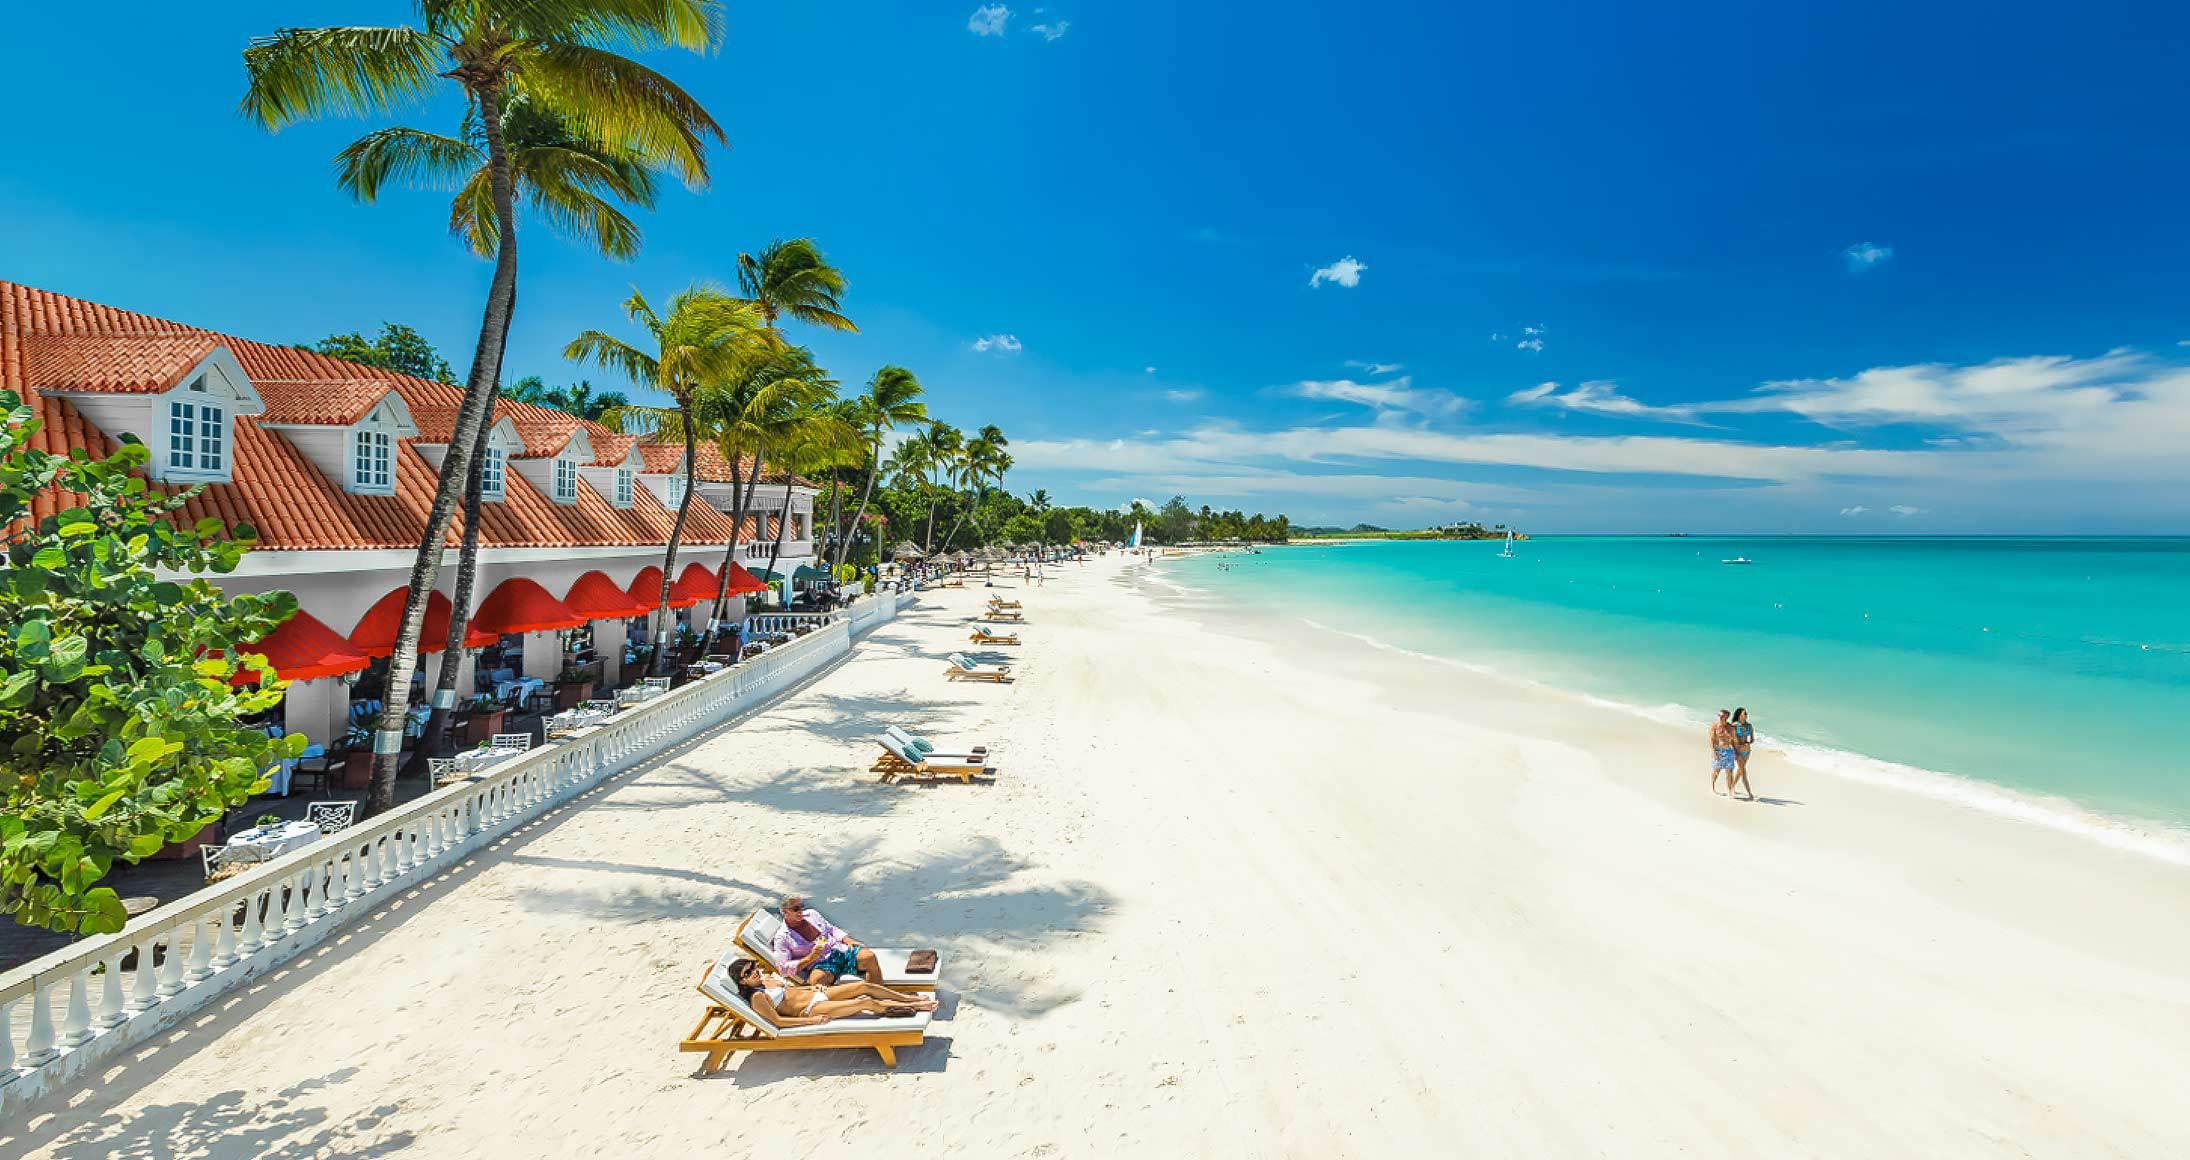 267d2d89bccb Sandals Grande Antigua Luxury Resort in St. Johns